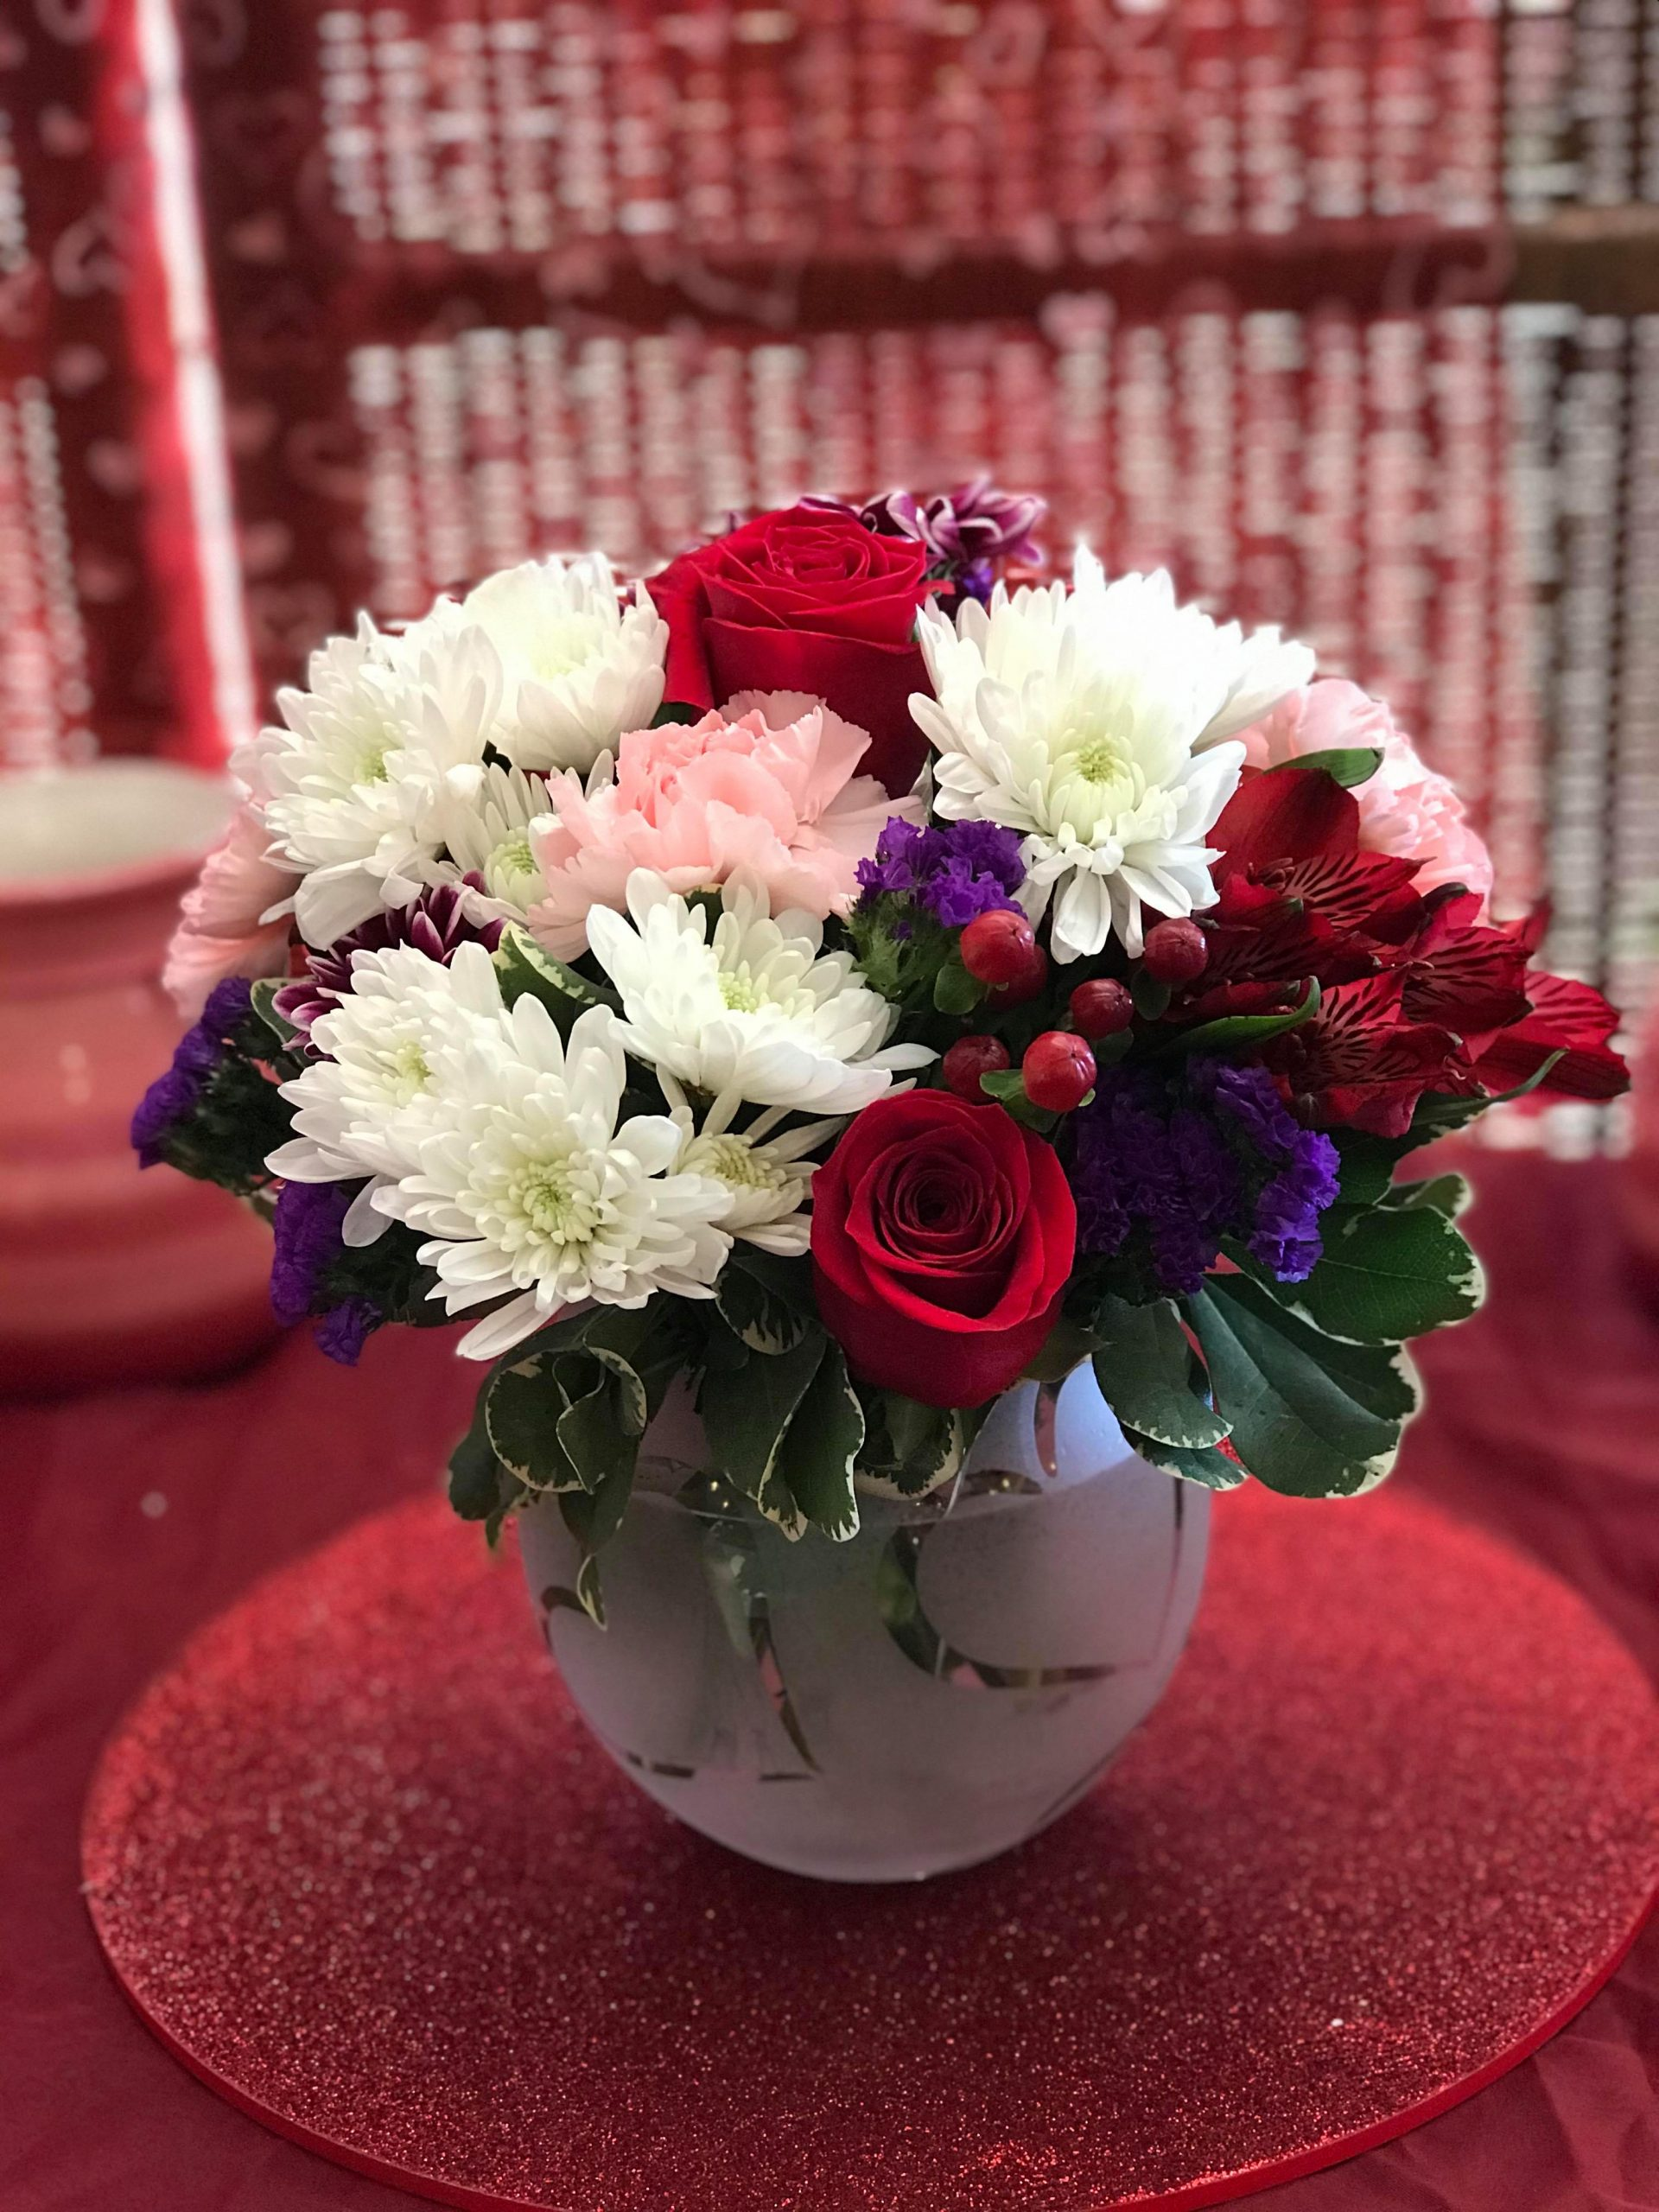 So Sweet Bouquet - Flowers From The Heart